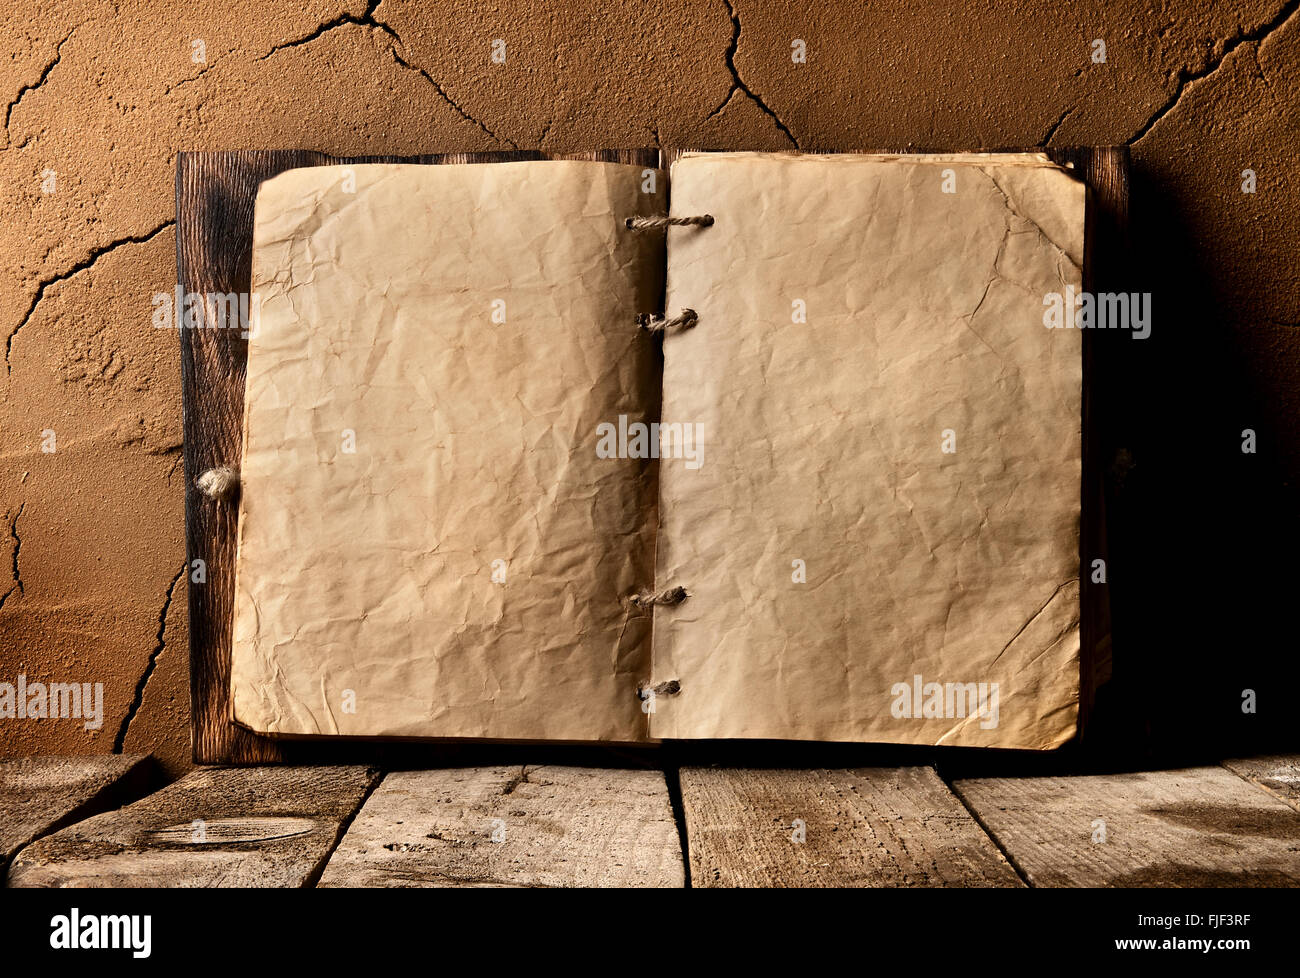 Opened old book on table near clay wall - Stock Image